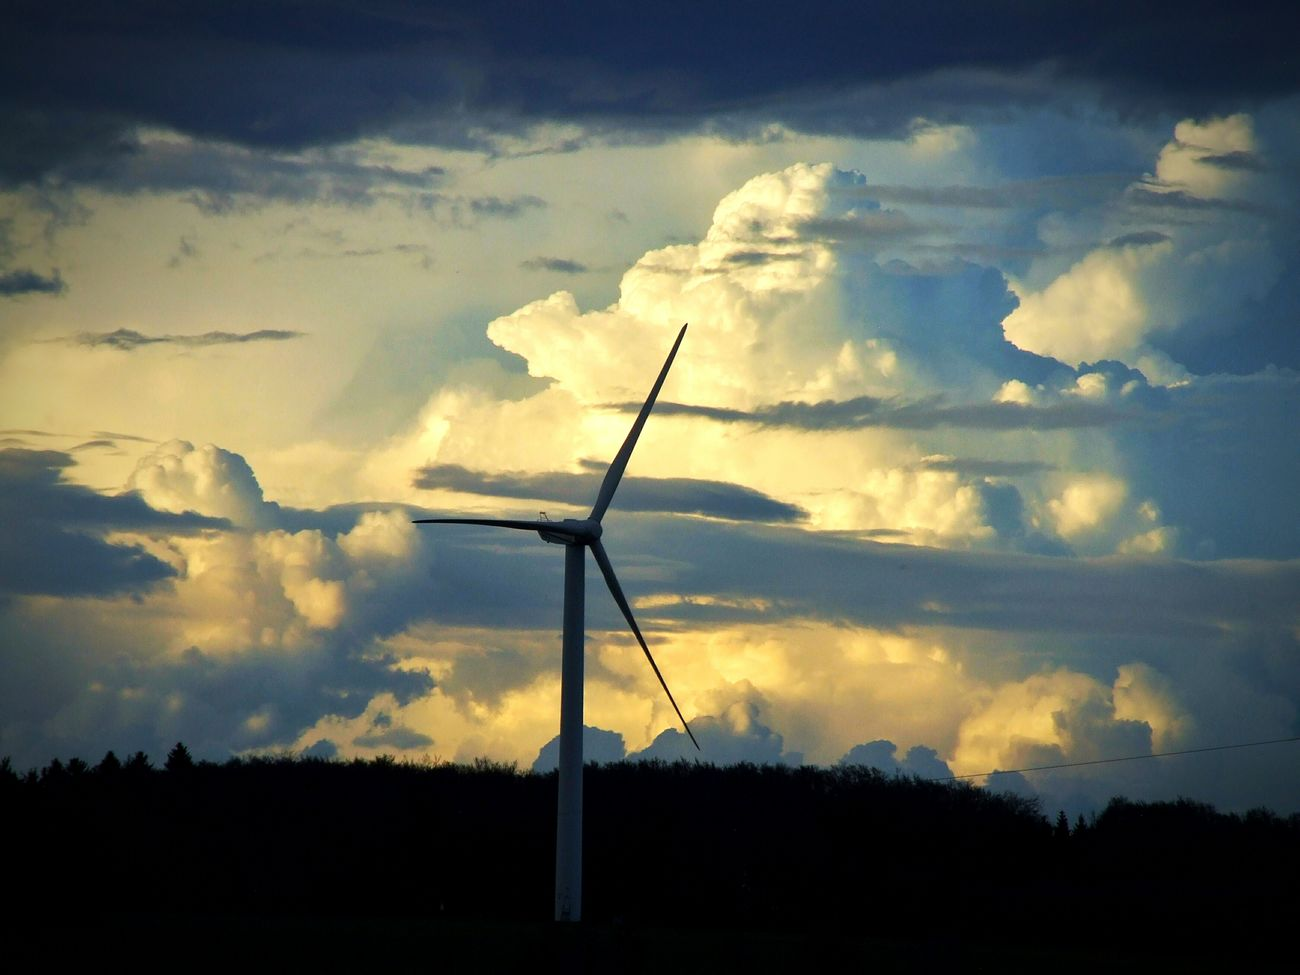 Cloud - Sky Wind Power Nature Sky No People Power In Nature Wind Turbine Clouds And Sky Cloudy Sky Big Clouds Dramatic Clouds